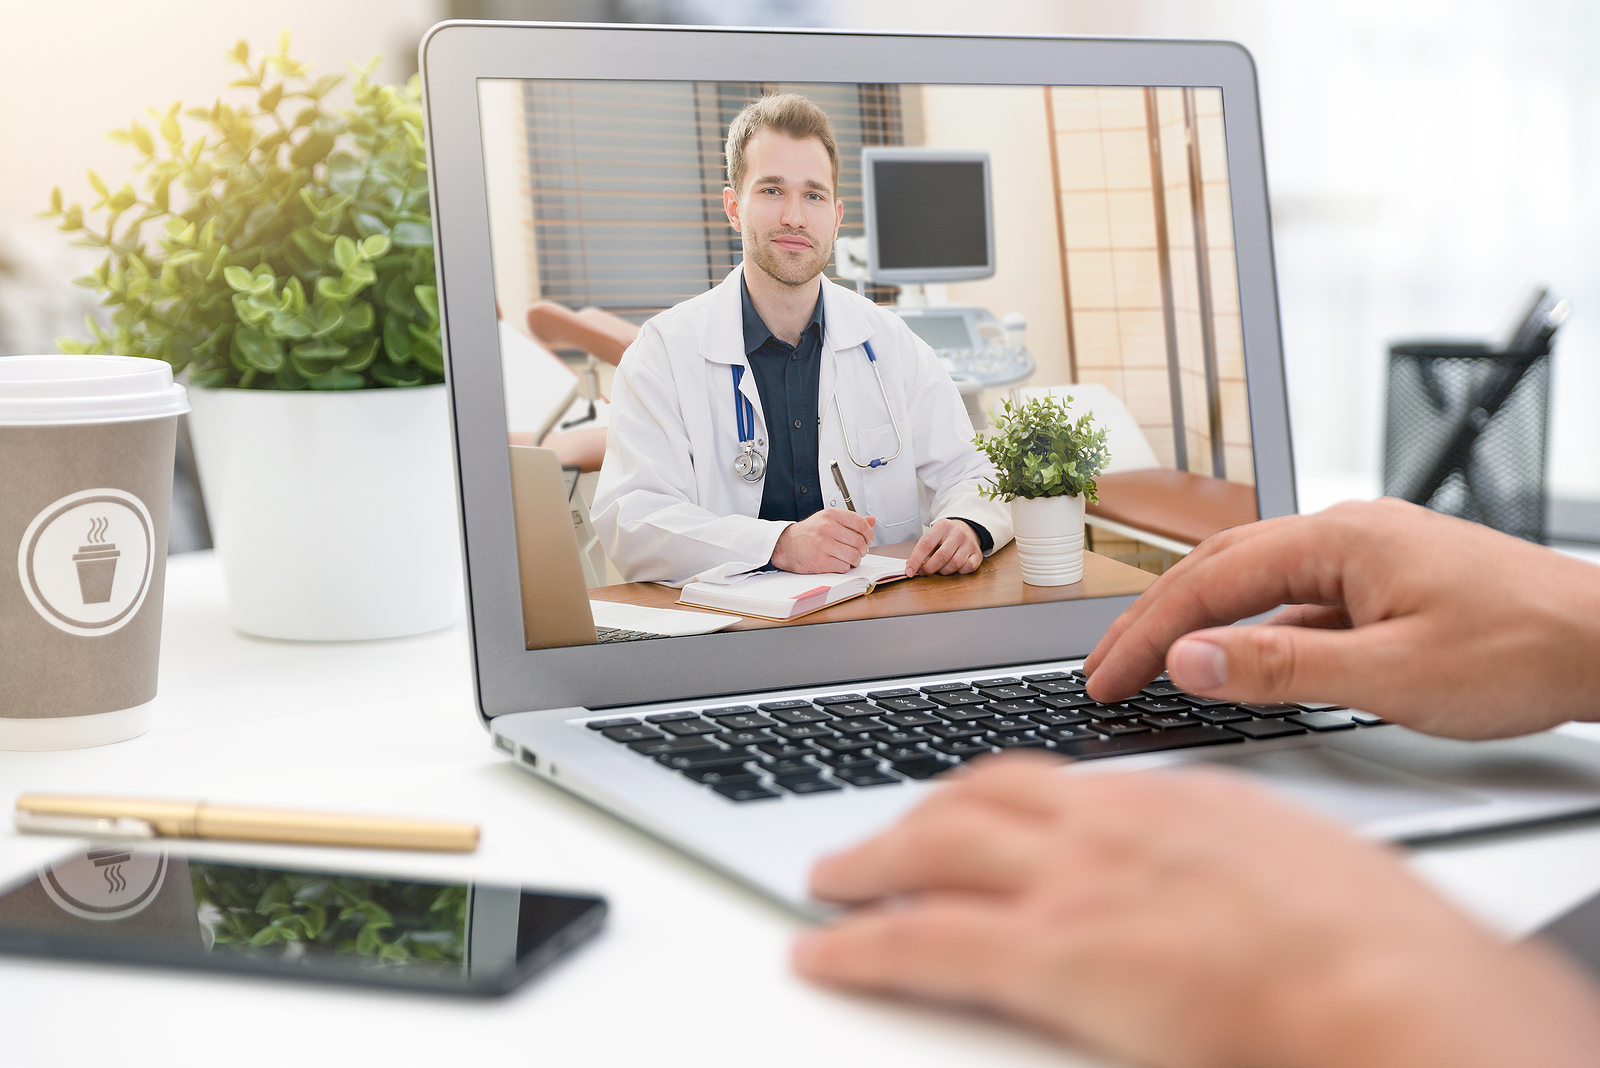 7 Ways Telemedicine Can Improve Home-Based Care